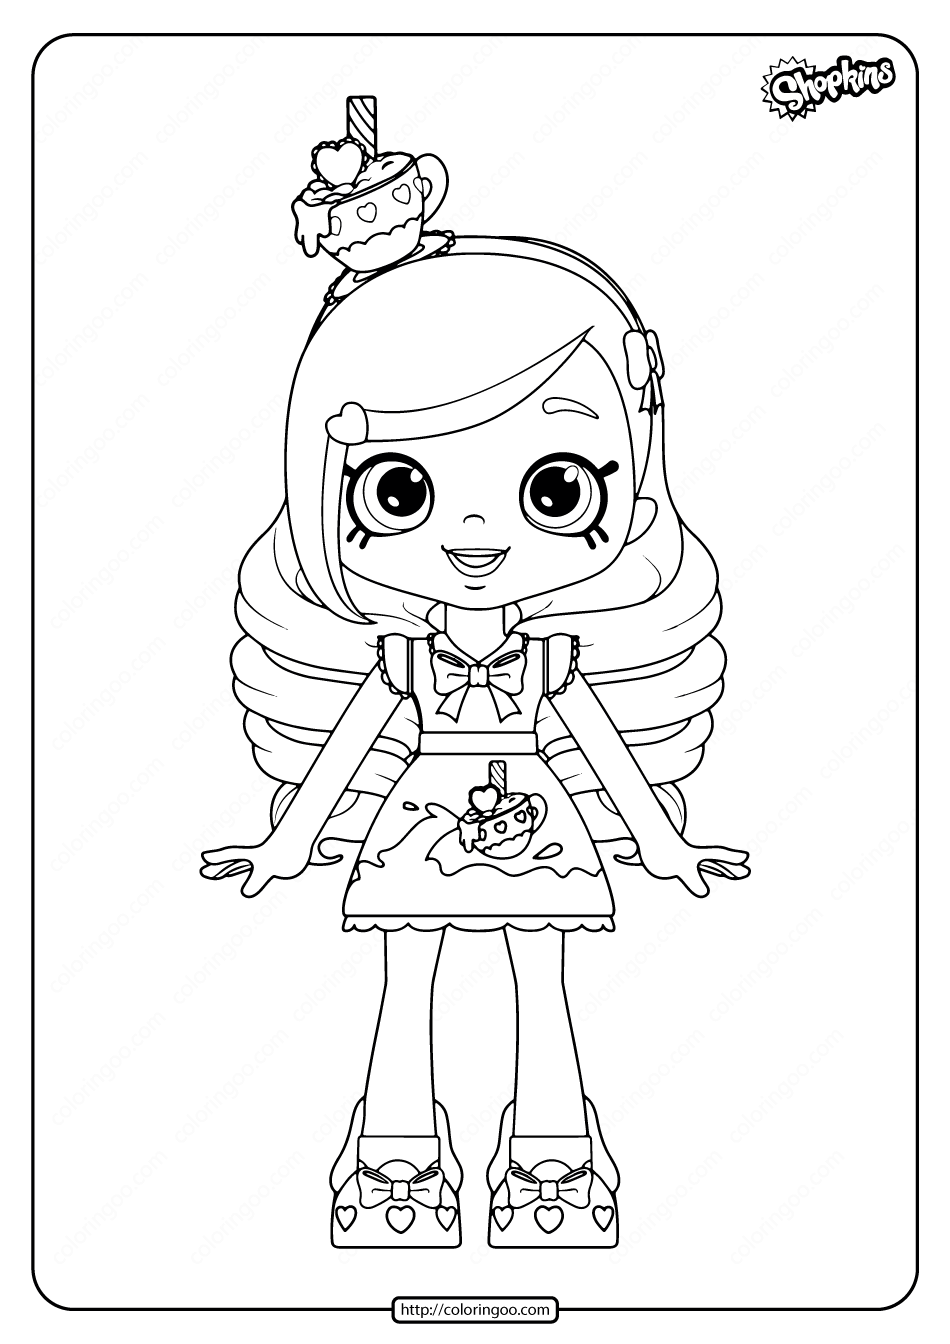 Printable Shopkins Kirstea Coloring Pages